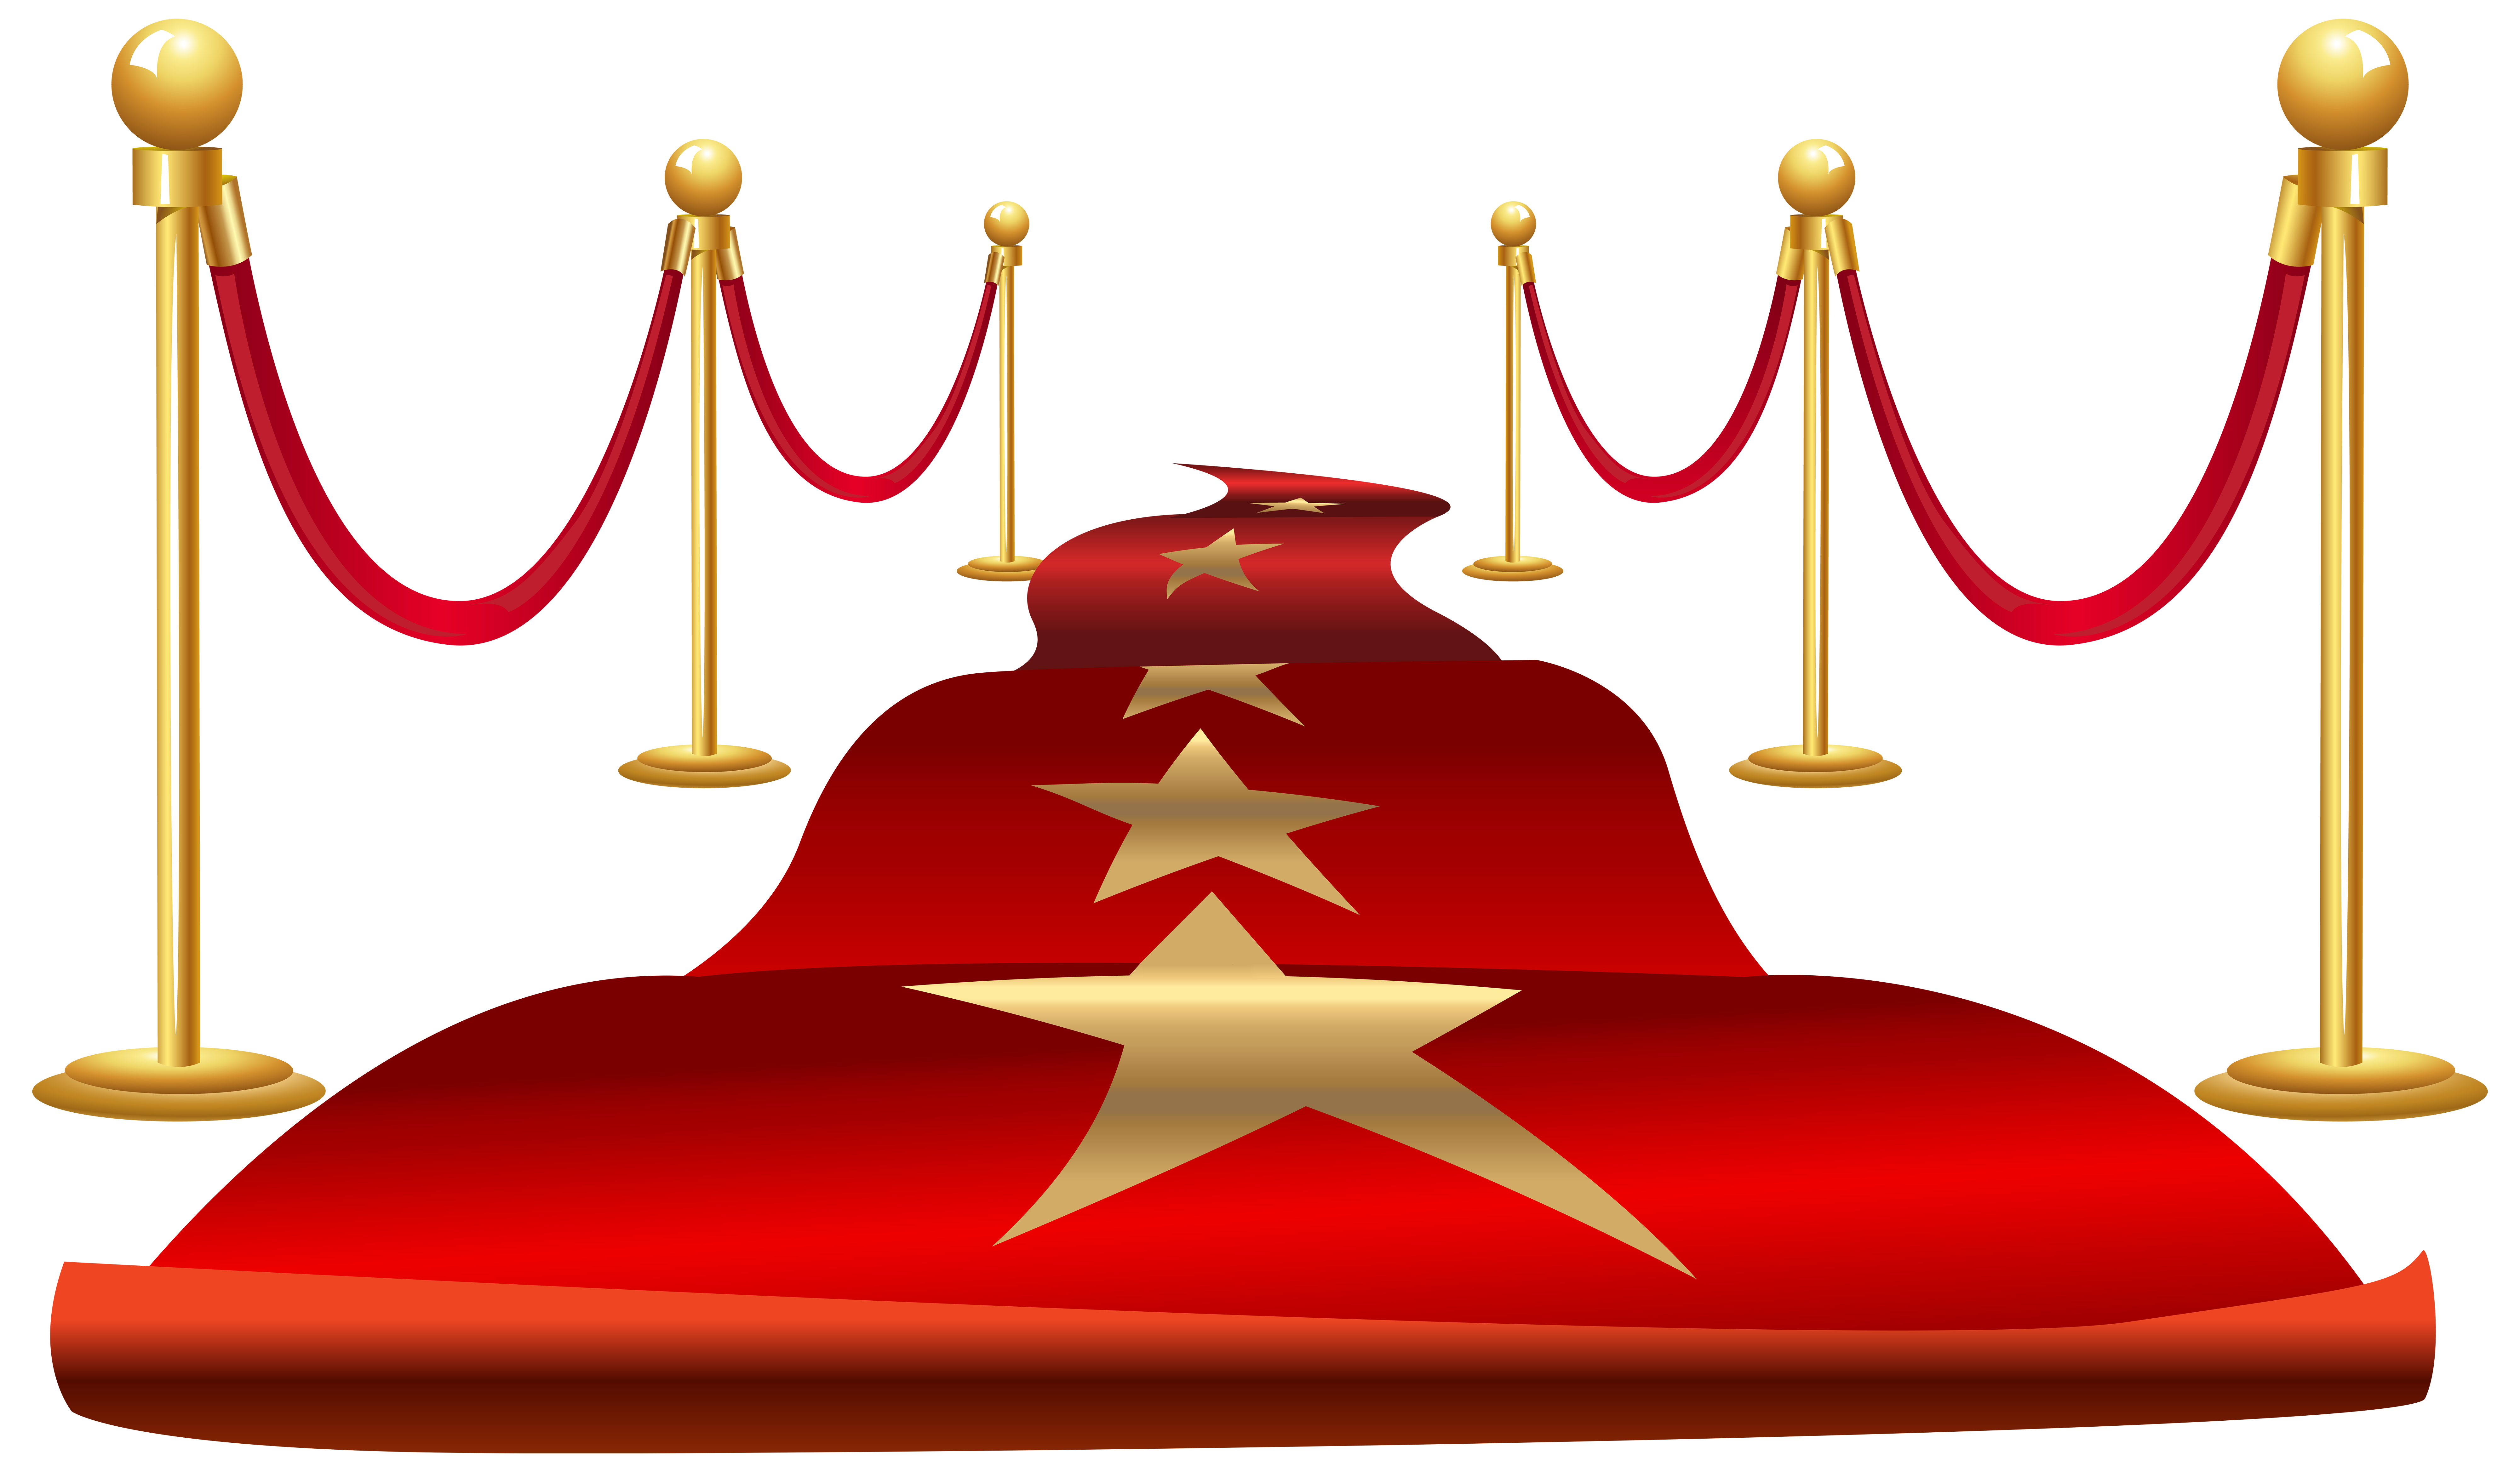 Five pointed star clipart vector download Red carpet Clip art - Cartoon five-pointed star red carpet 8000*4674 ... vector download